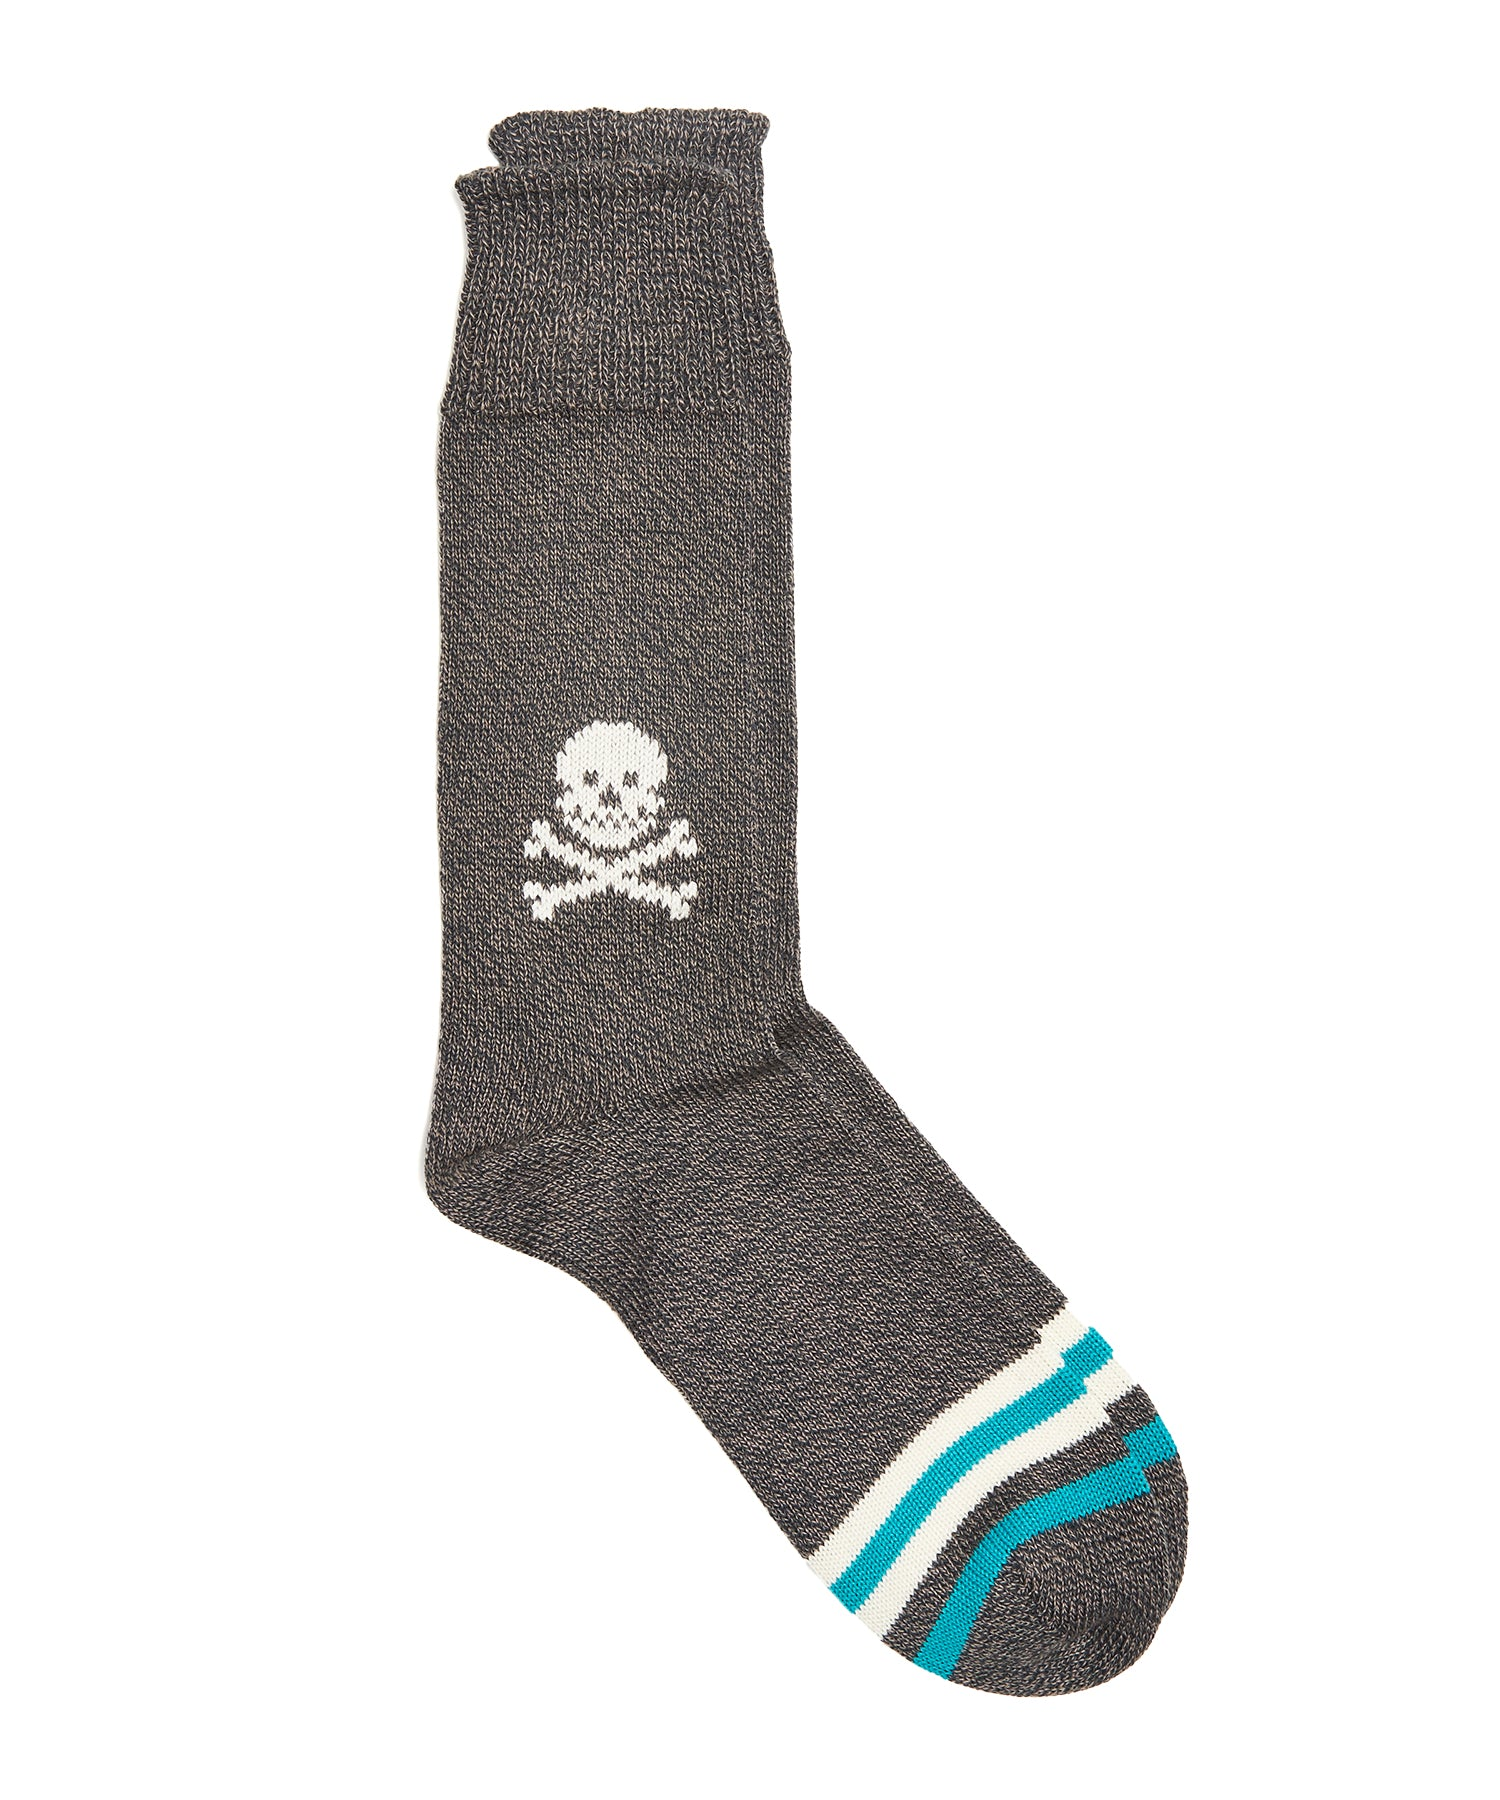 Corgi Skulls Heavy Weight Cotton Sock